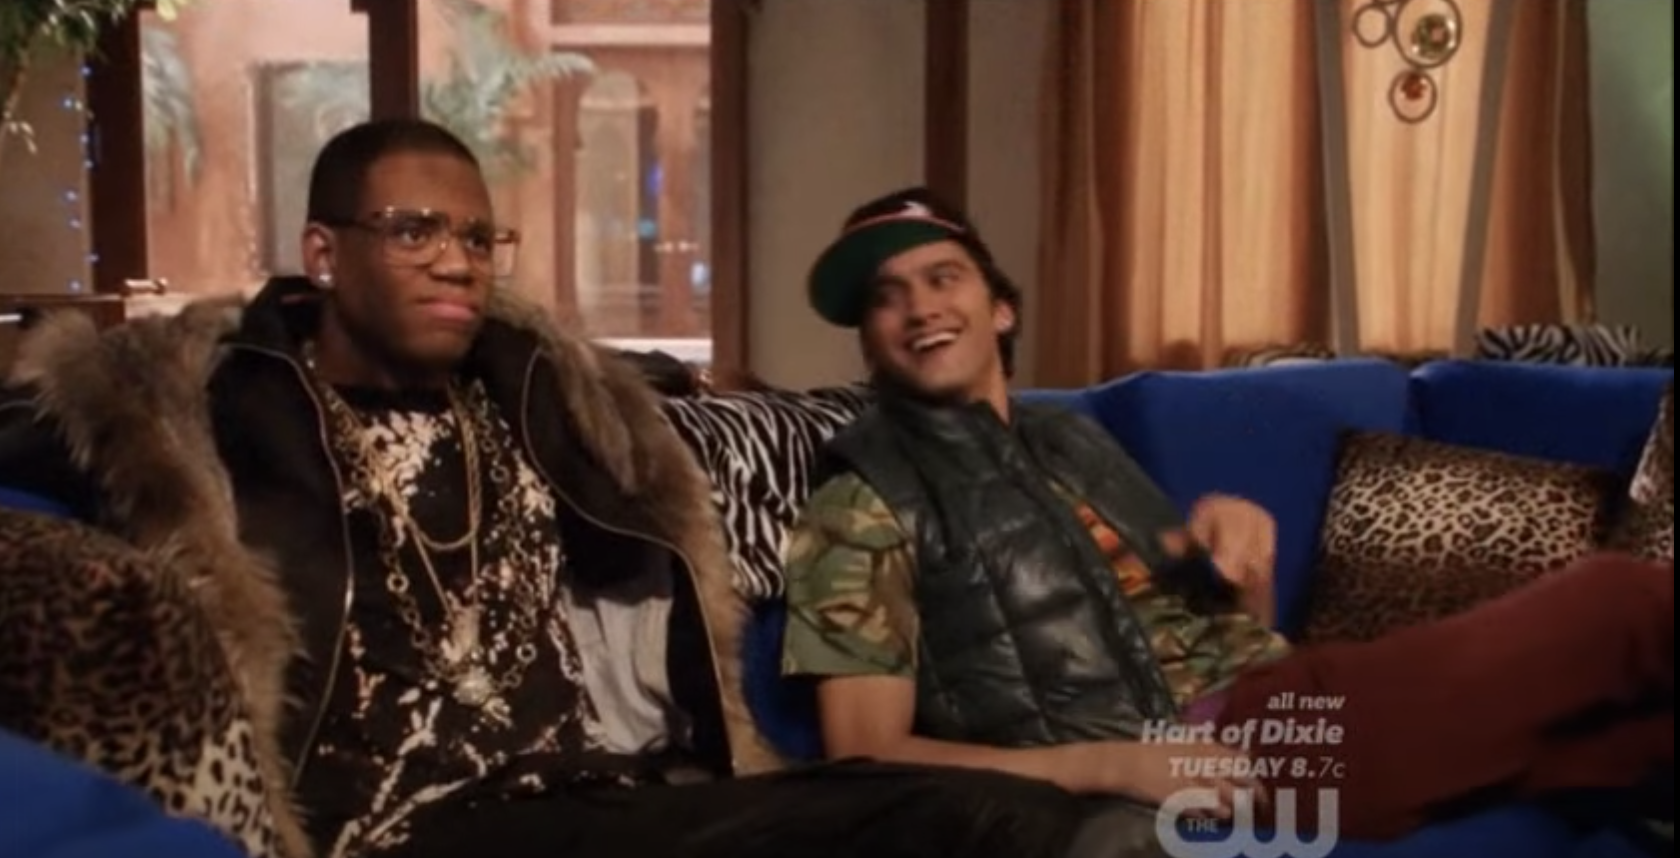 Dixom sitting on the couch with Navid